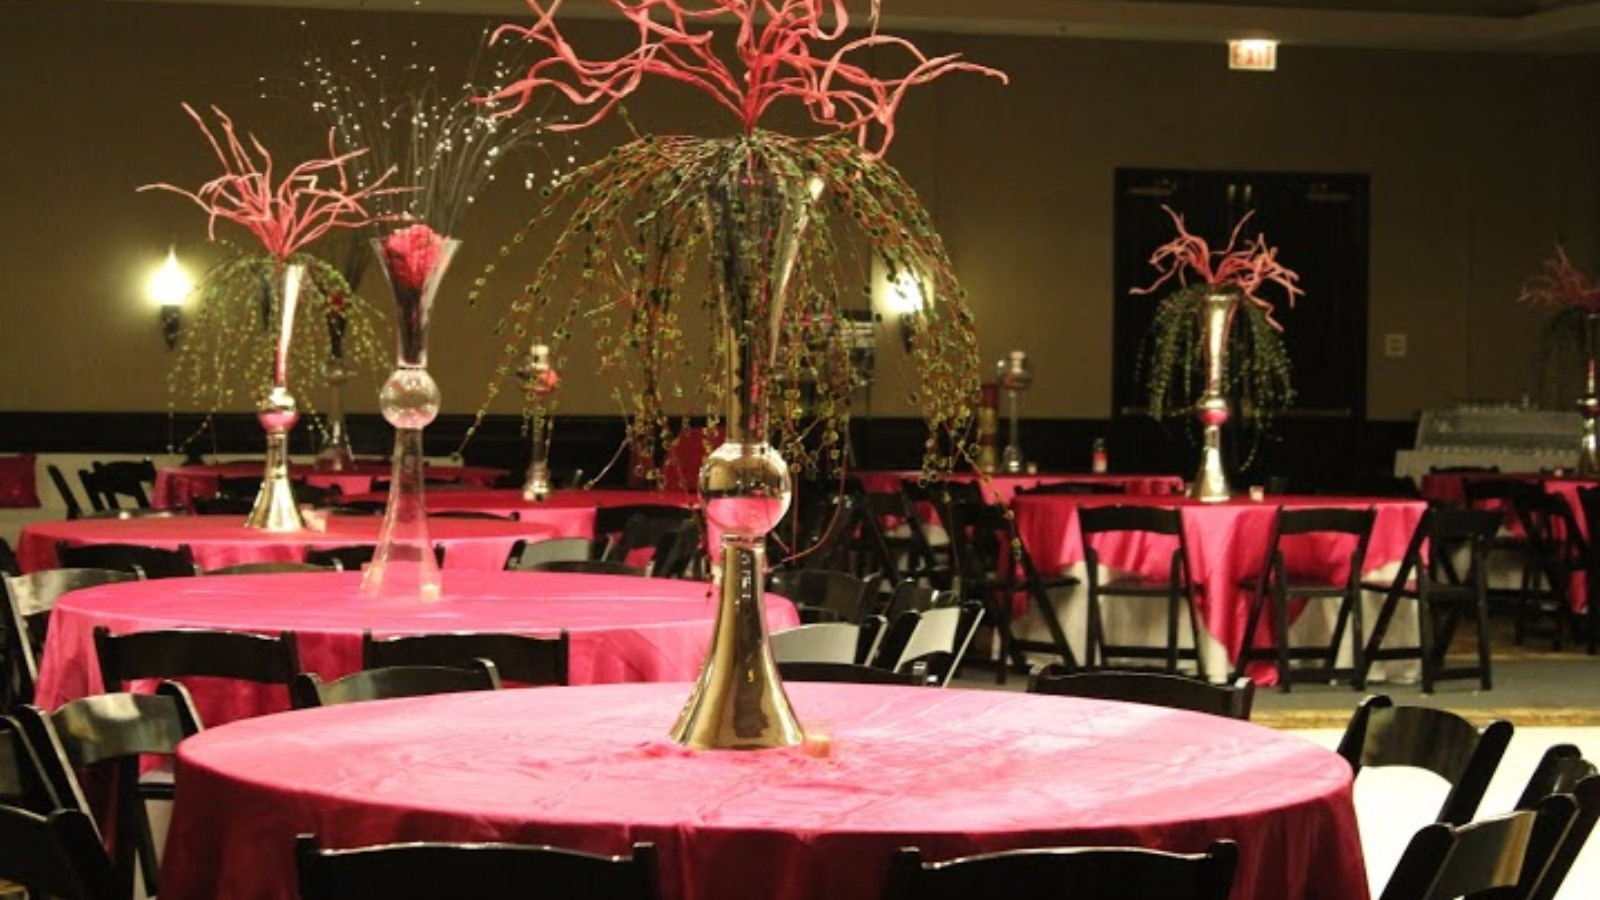 Wedding Venues in Lisle IL